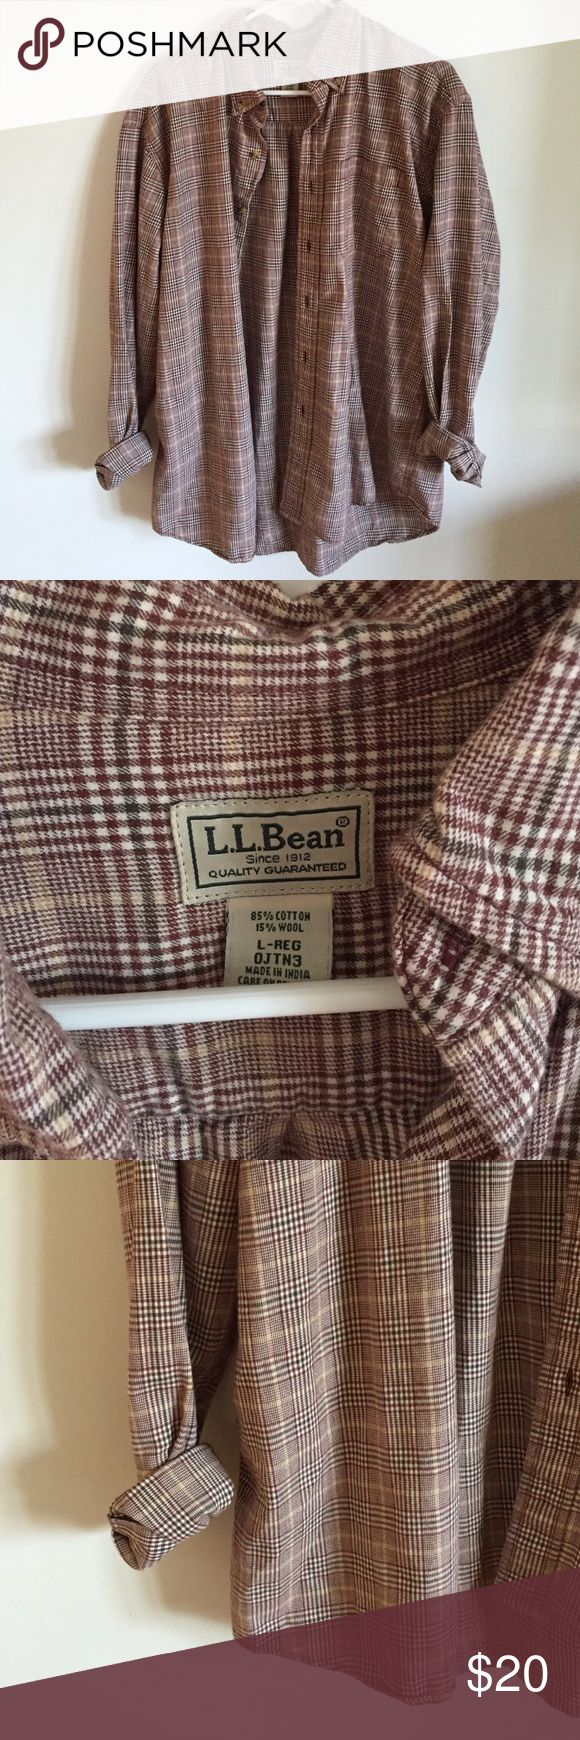 Vintage LL Bean Oversized Flannel Plaid Really cute! A plaid patterned vintage looking oversized flannel. Button down. Warm and cozy. It is a men's size L, but I wore this with leggings and boots, so cute!! Has a grunge 90s feel to it L.L. Bean Tops Button Down Shirts